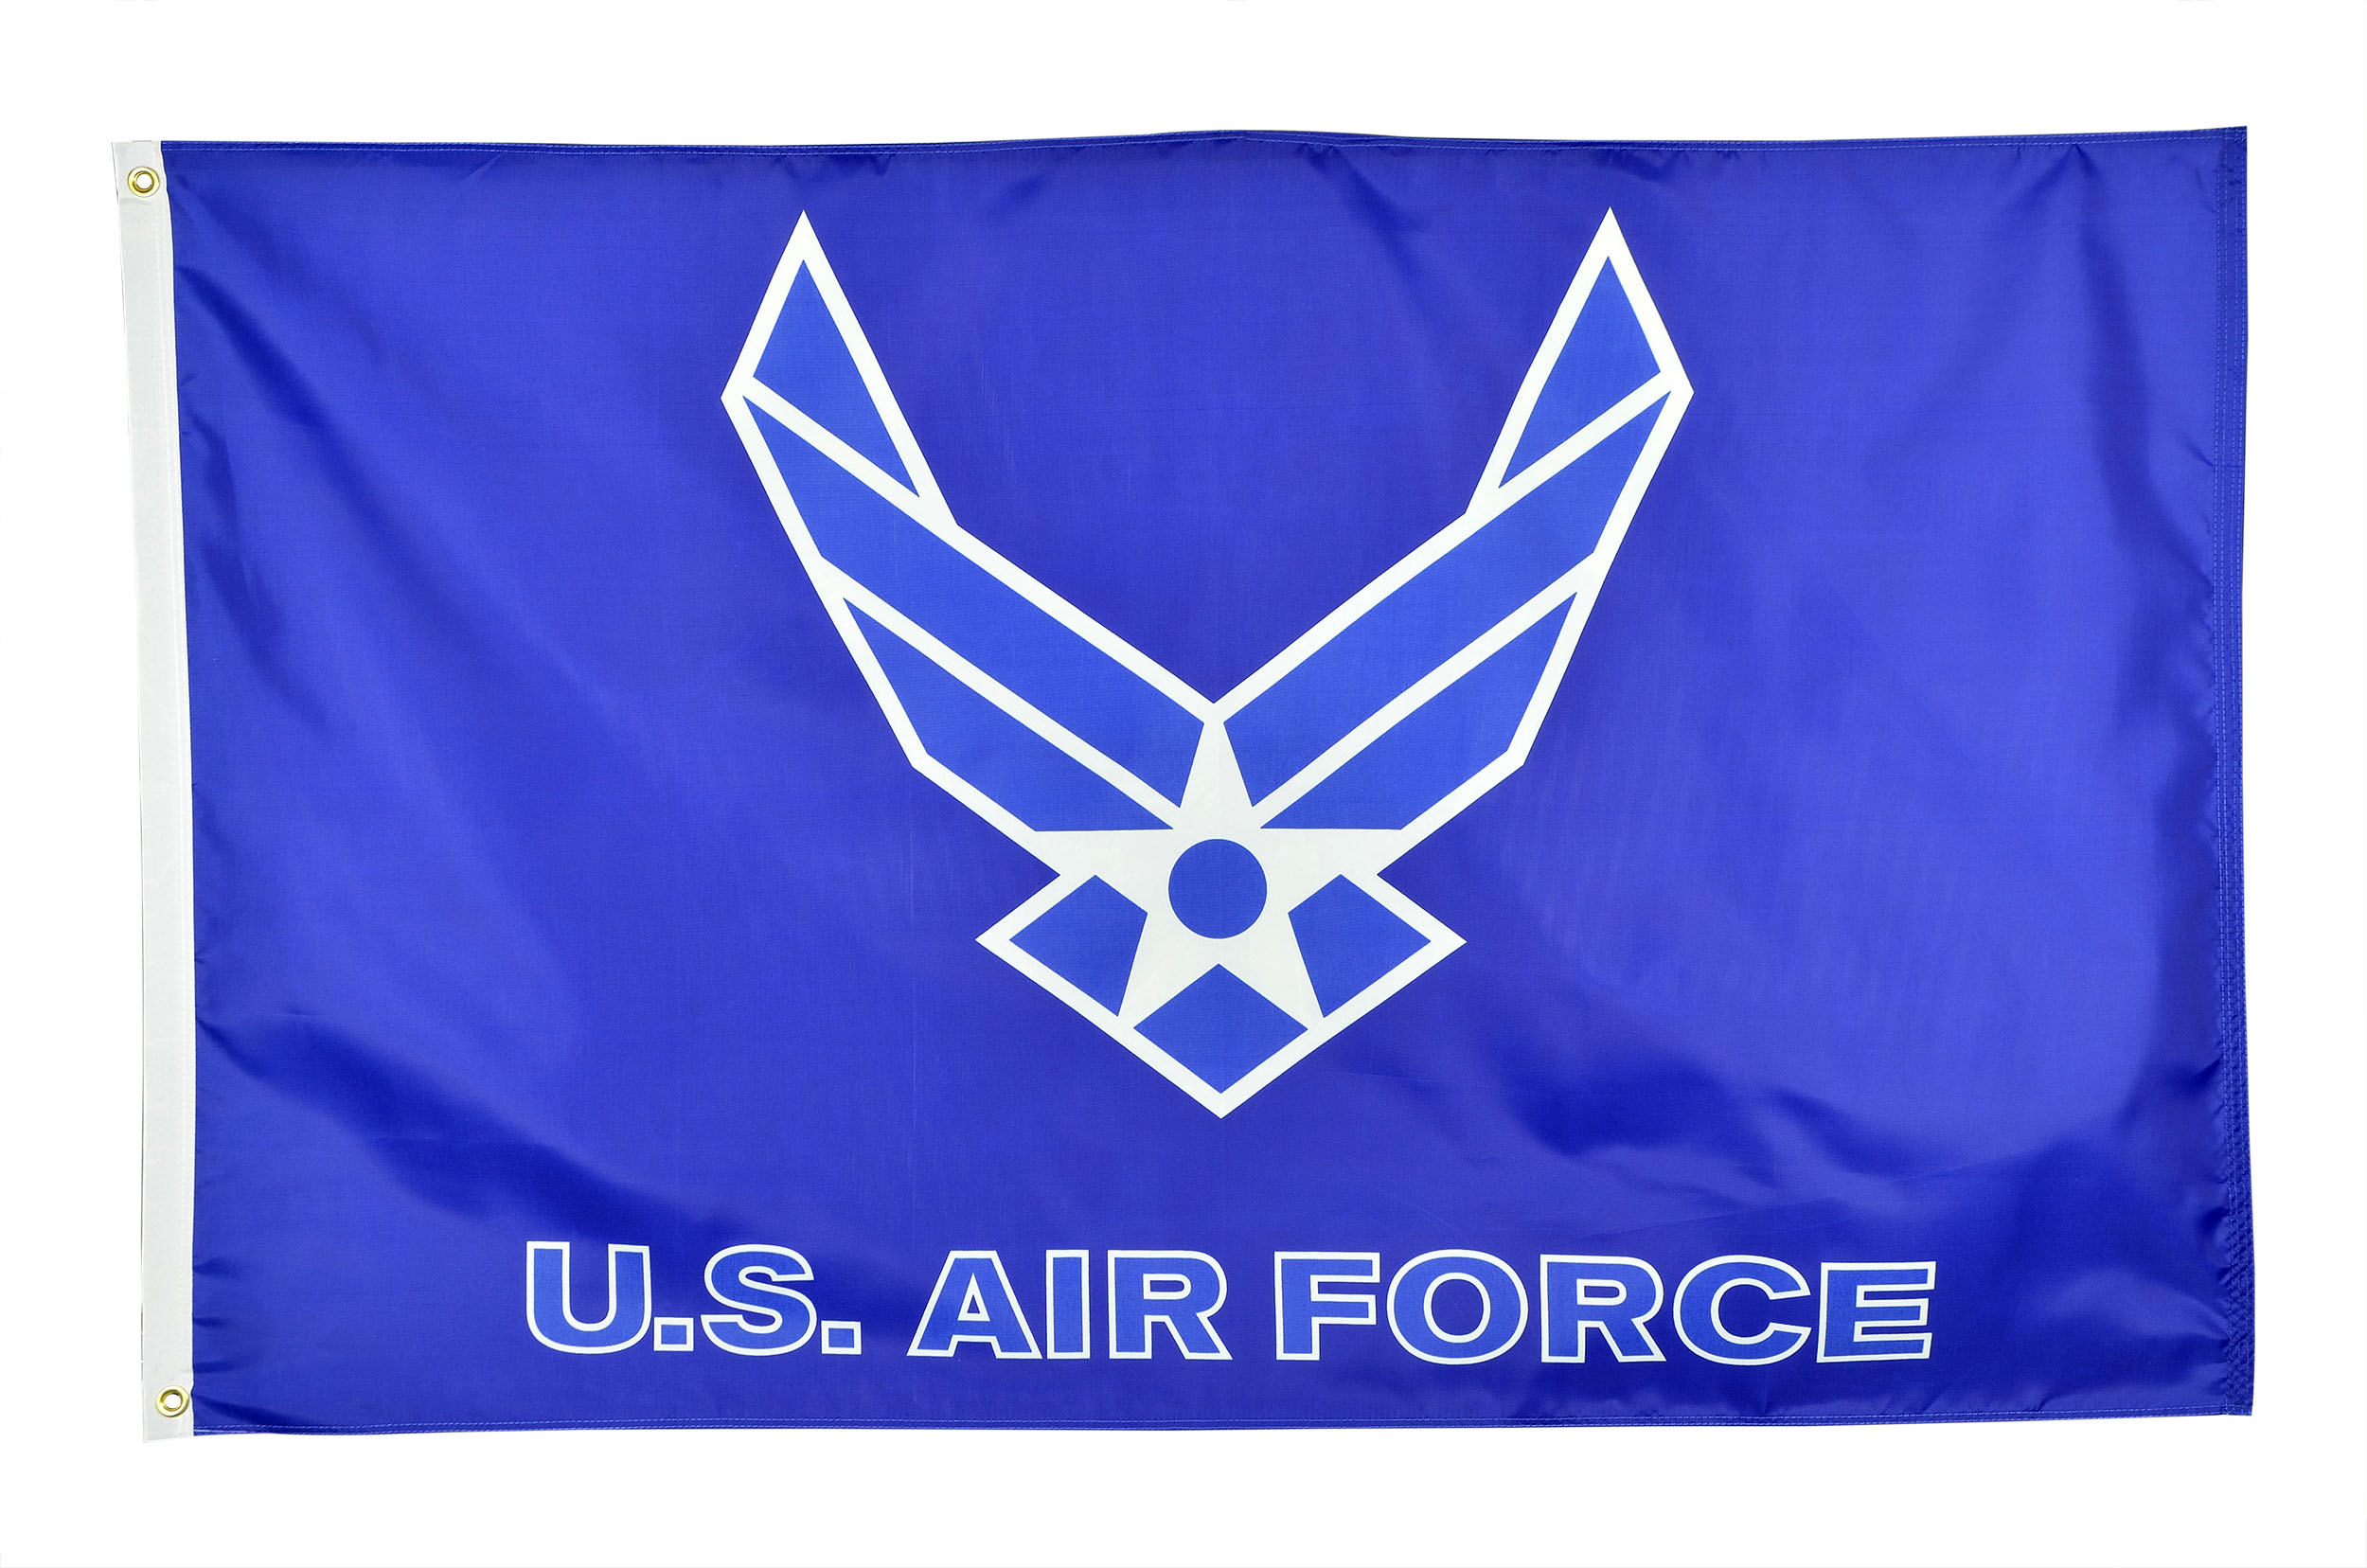 US Air Force Flag 3 X 5 ft- Heavy Duty Nylon US Armed Force Flag - 210D Quality Oxford Nylon